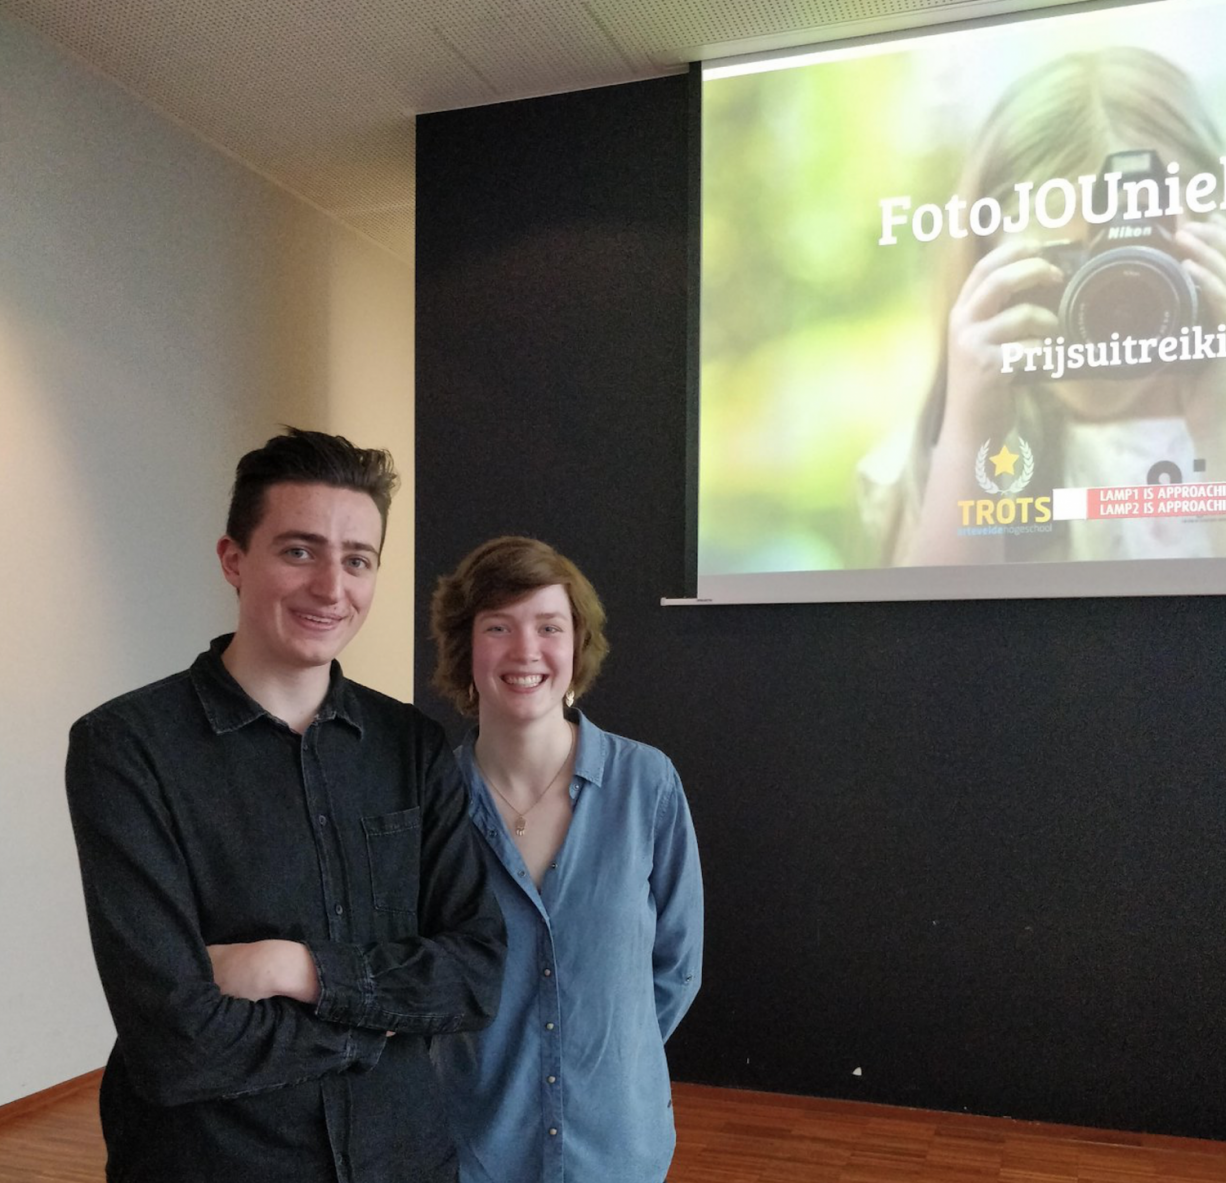 trots journalistiek foto expo